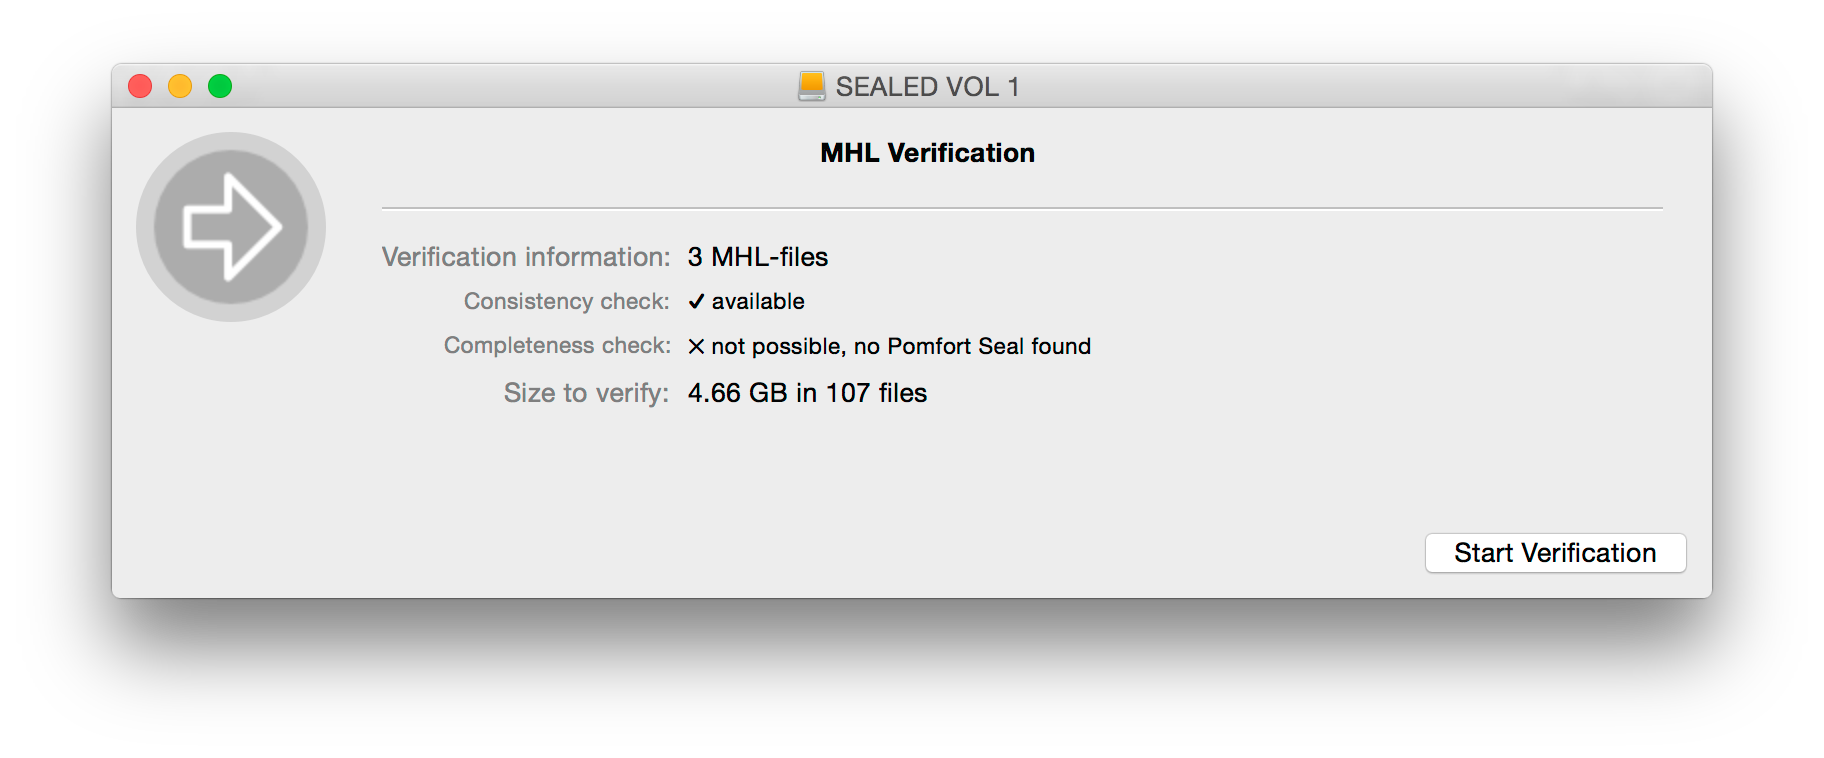 Fig. 10: MHL files found and ready for verification